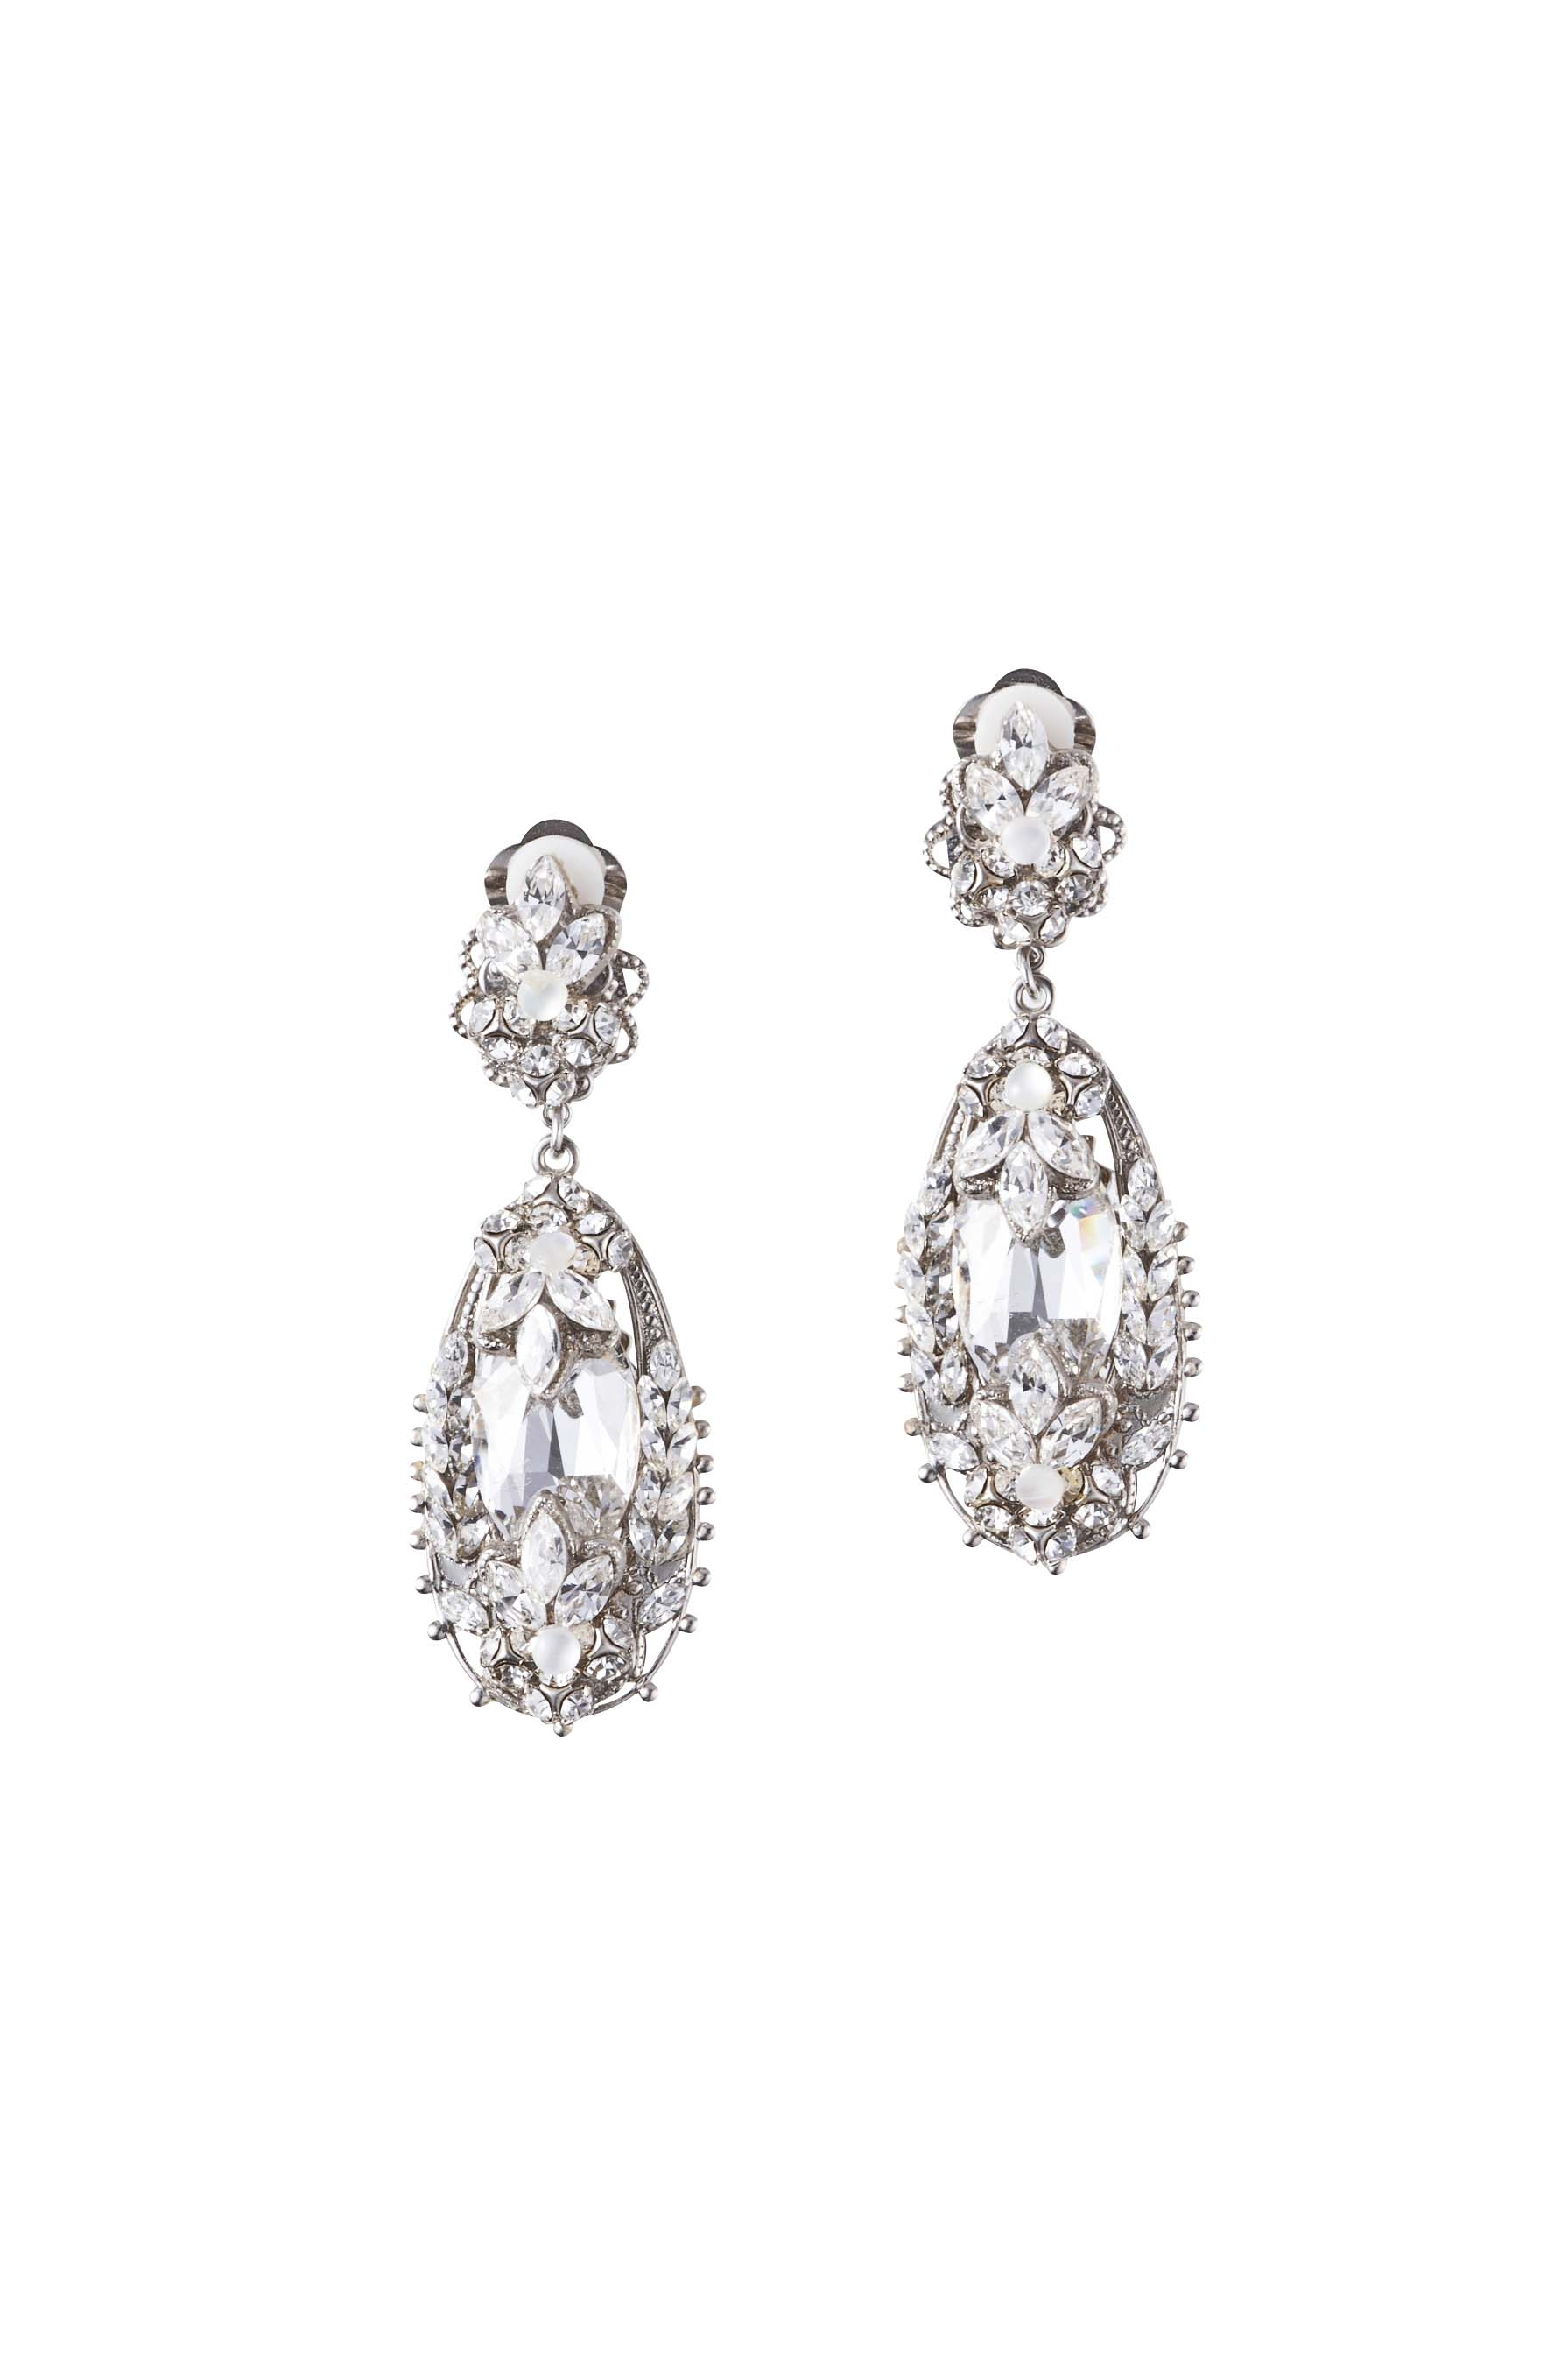 [RENTAL][Sarah Earrings]by MariaElena(参考価格¥48,600)